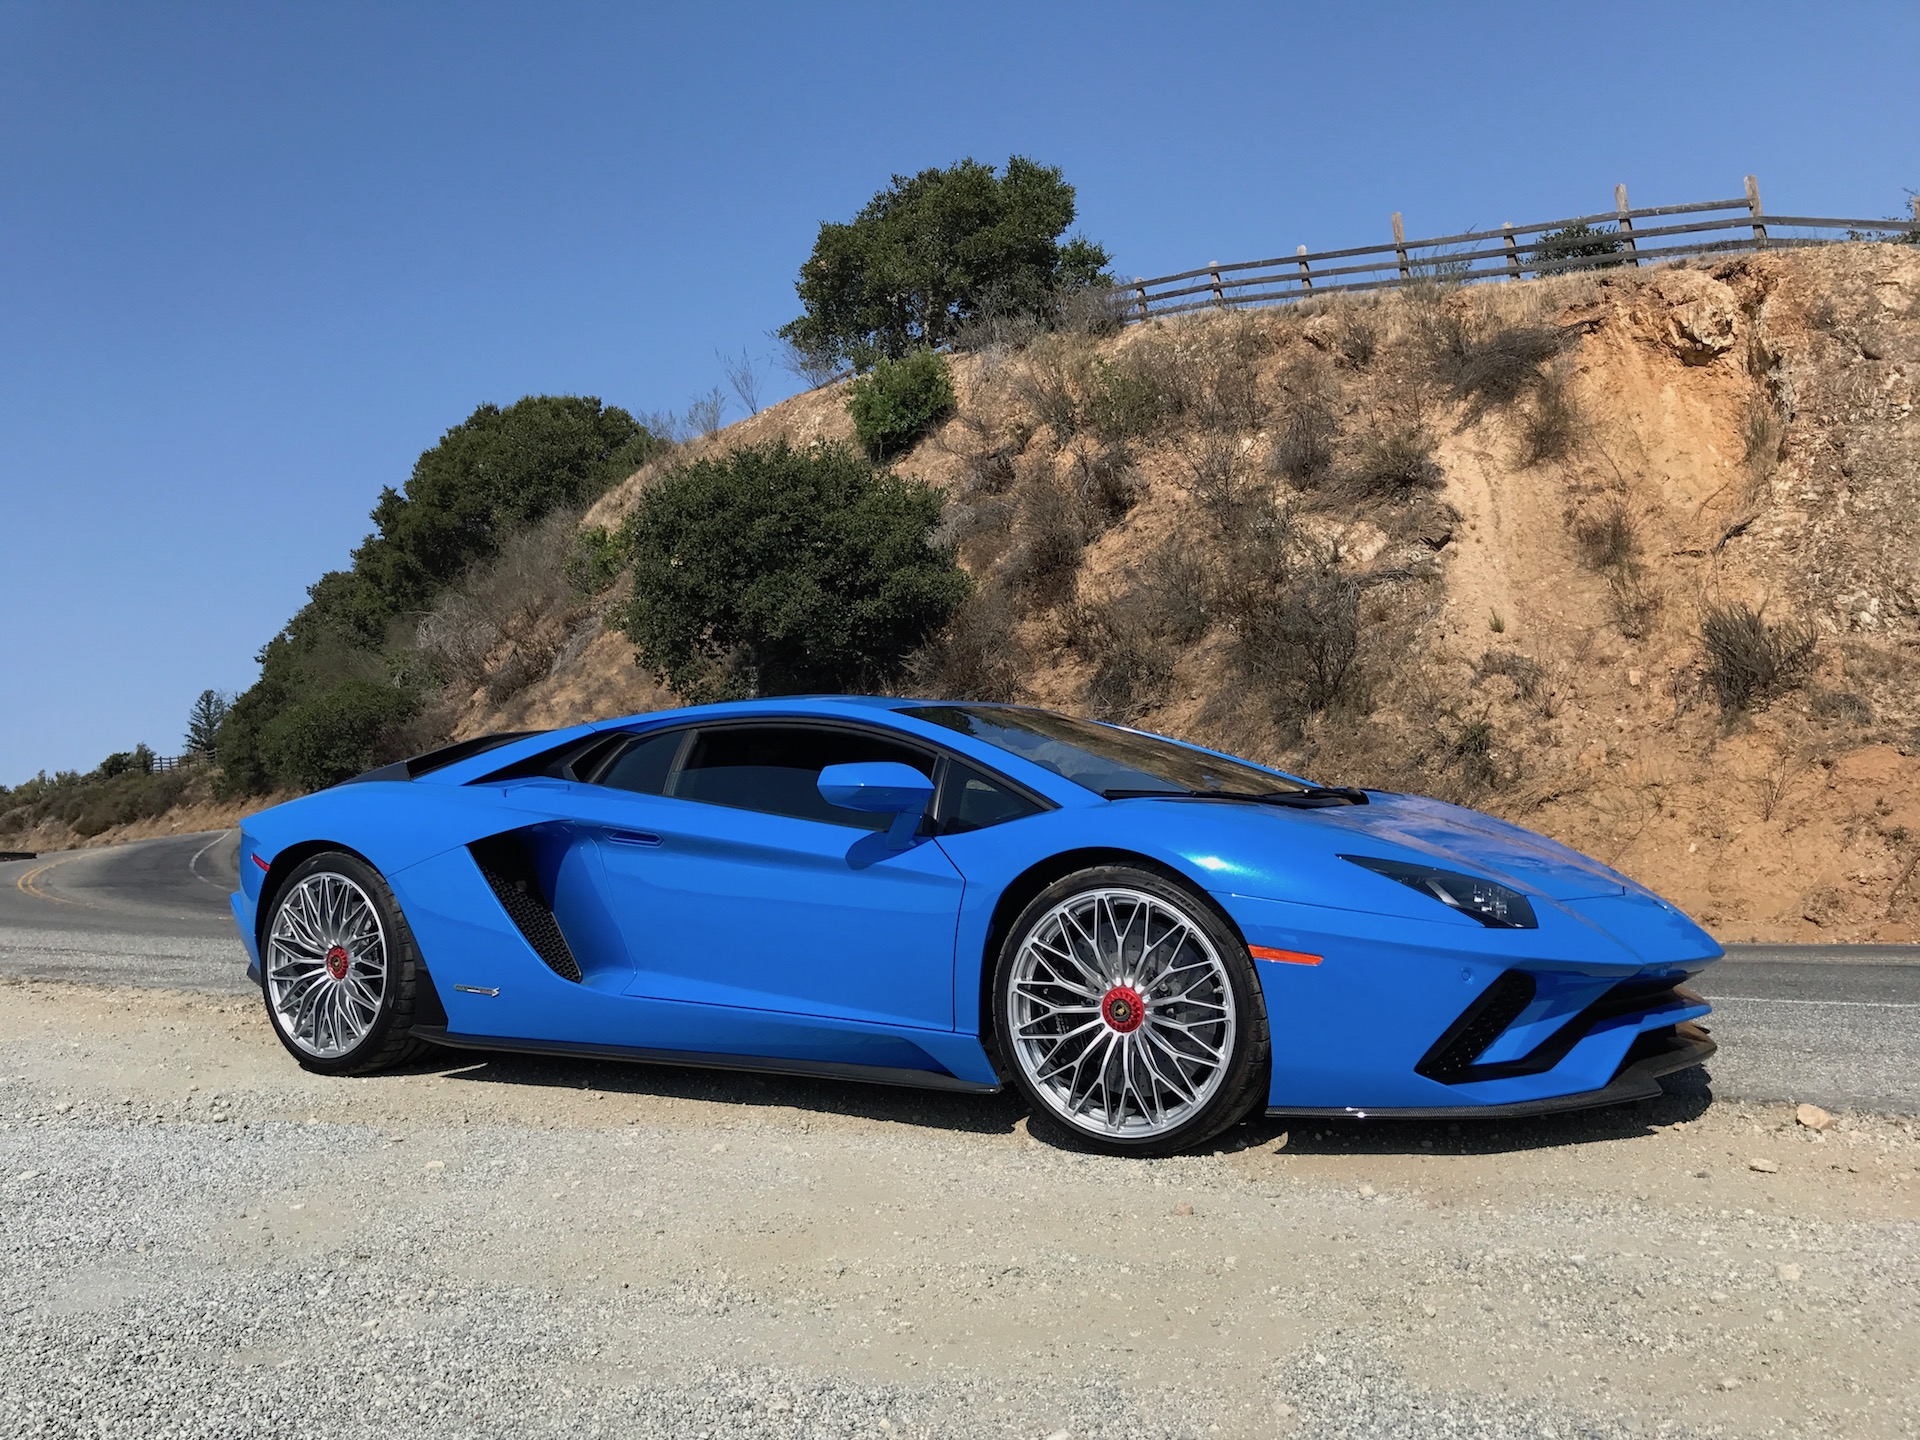 Lamborghini Aventador S First Drive Review The Wrong Car